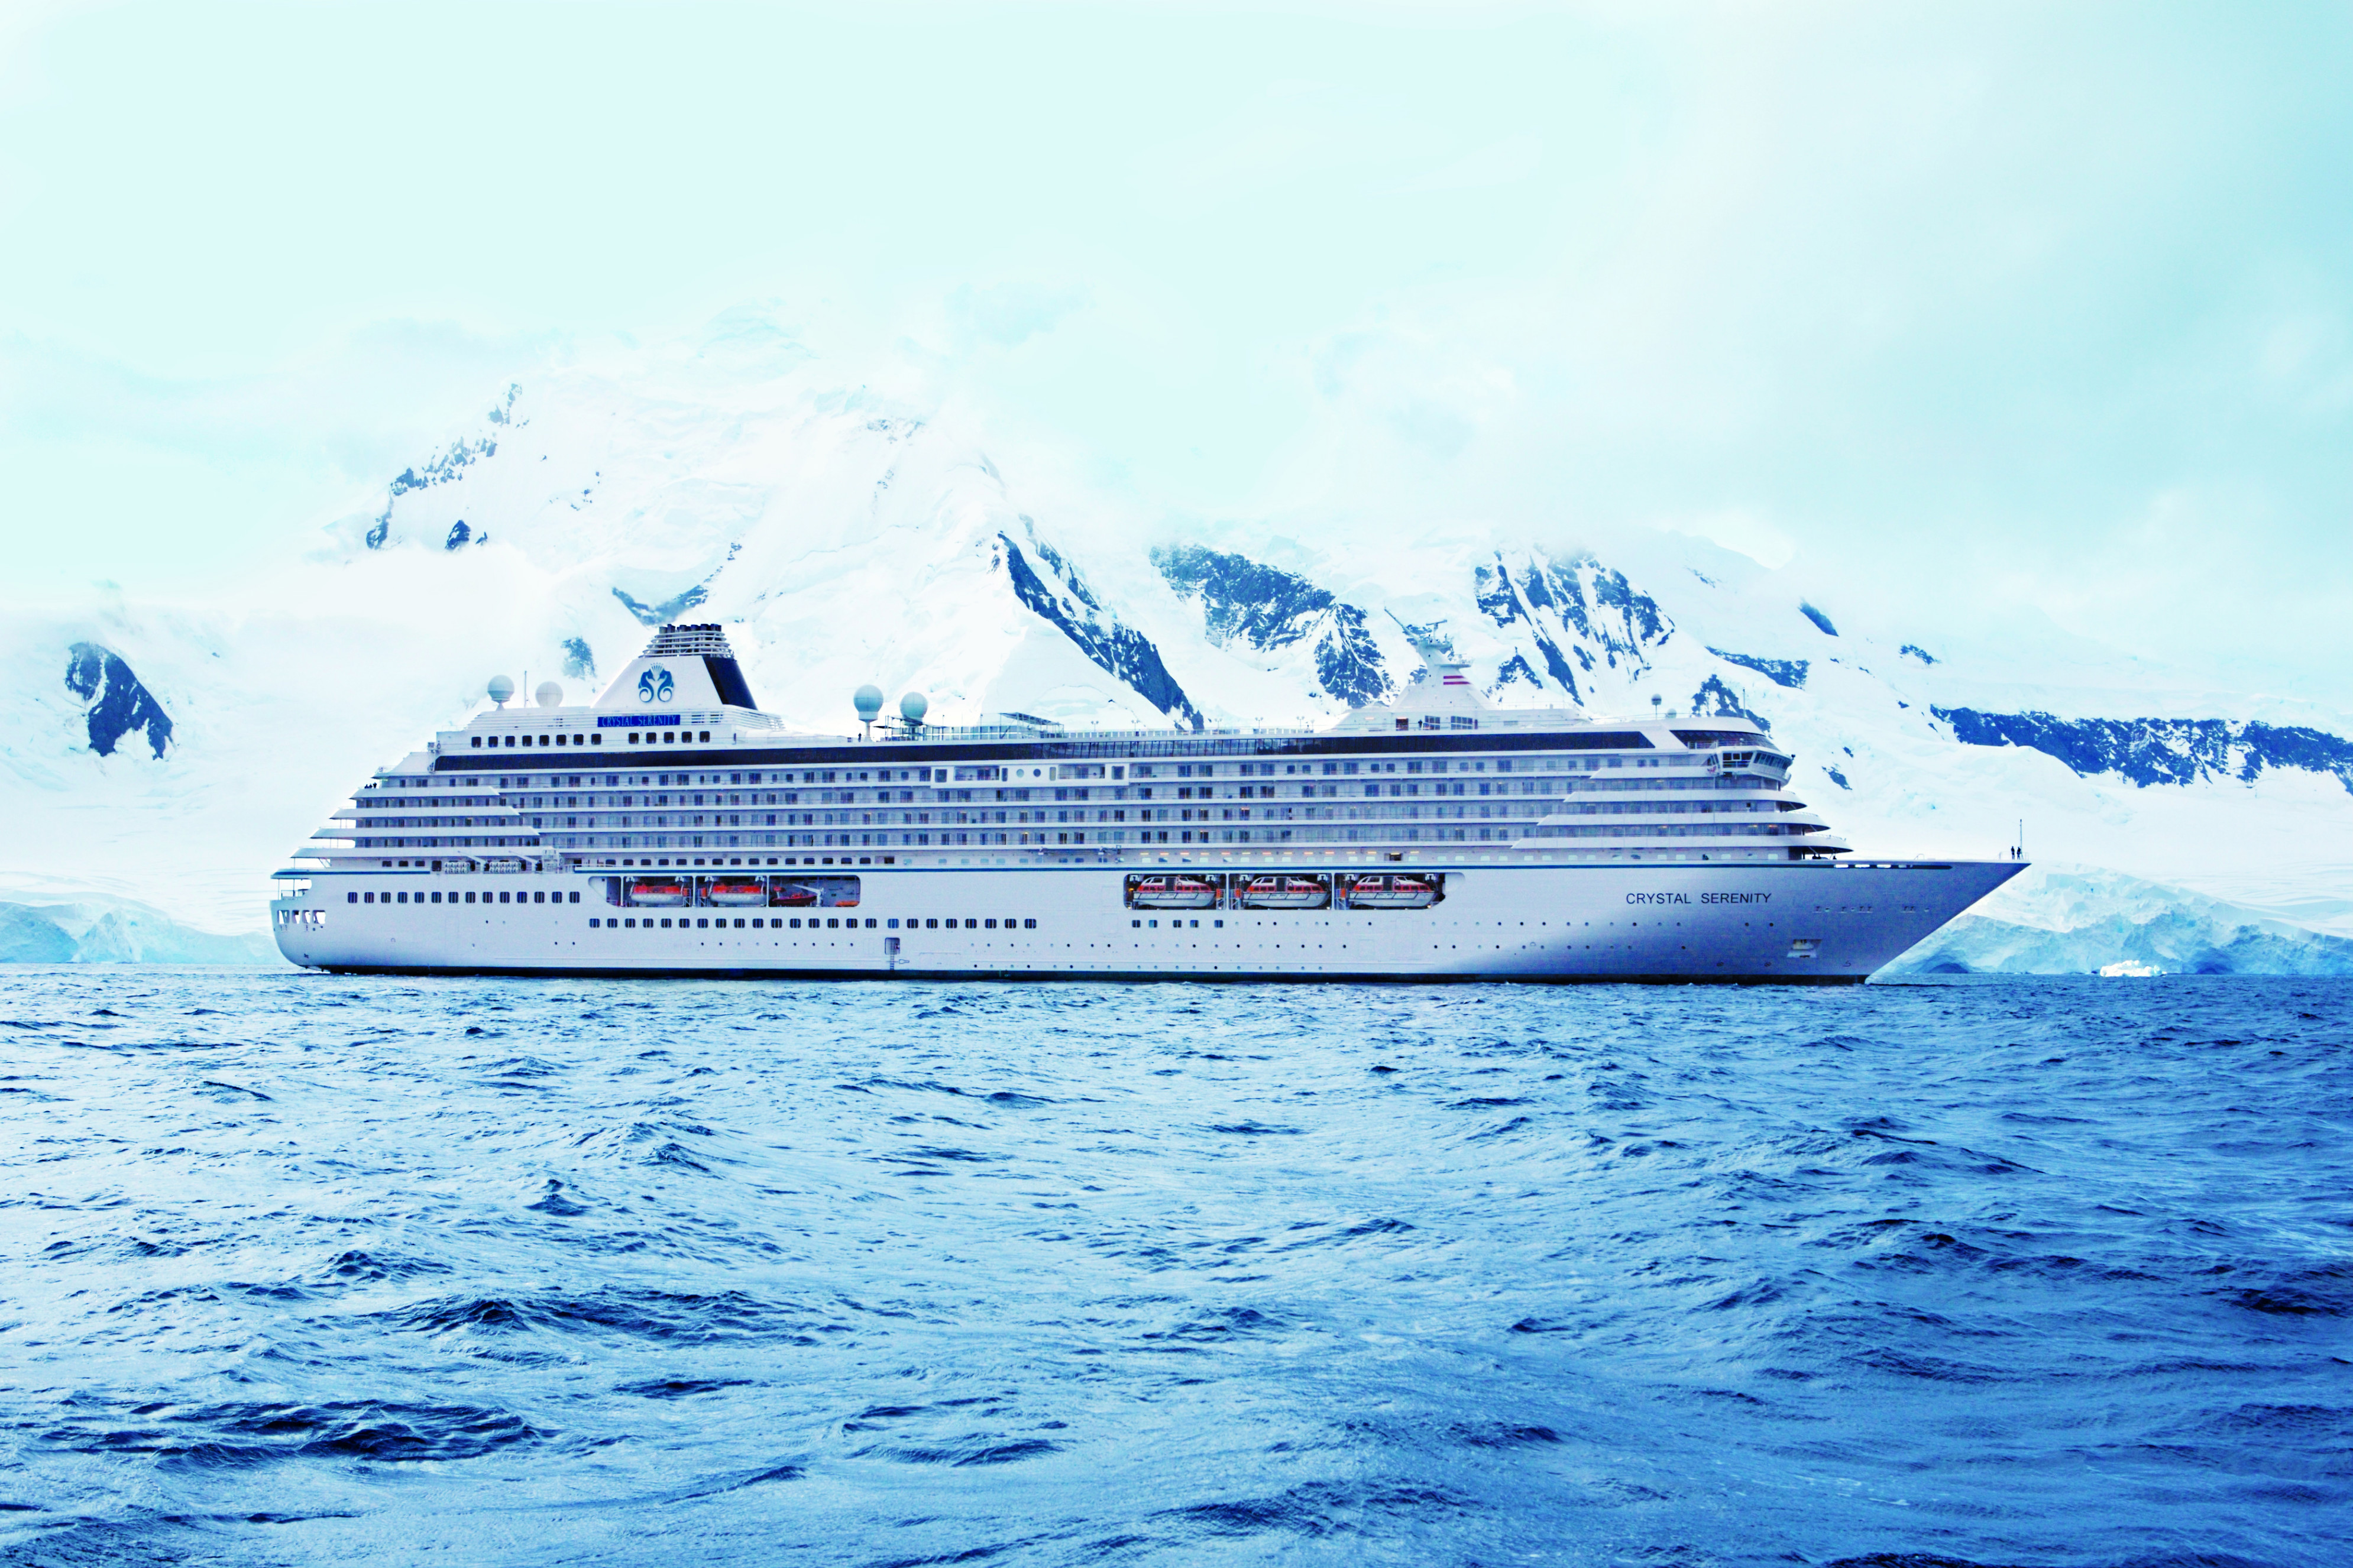 A year after its historic voyage, the Crystal Serenity is preparing to sail the Northwest Passage again